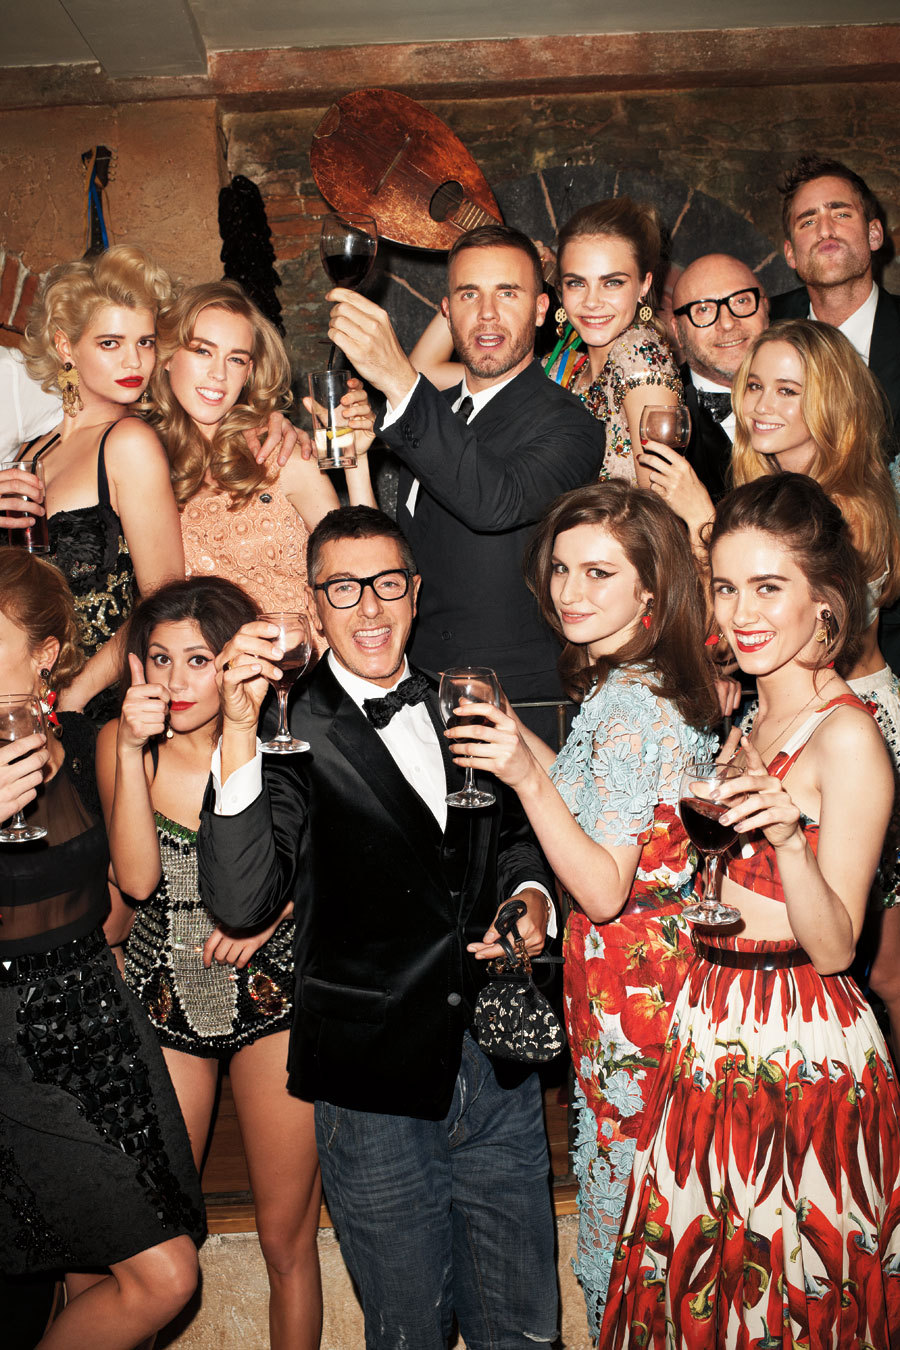 London's It Girls Dine with Dolce & Gabbana Terry Richardson, April 2012